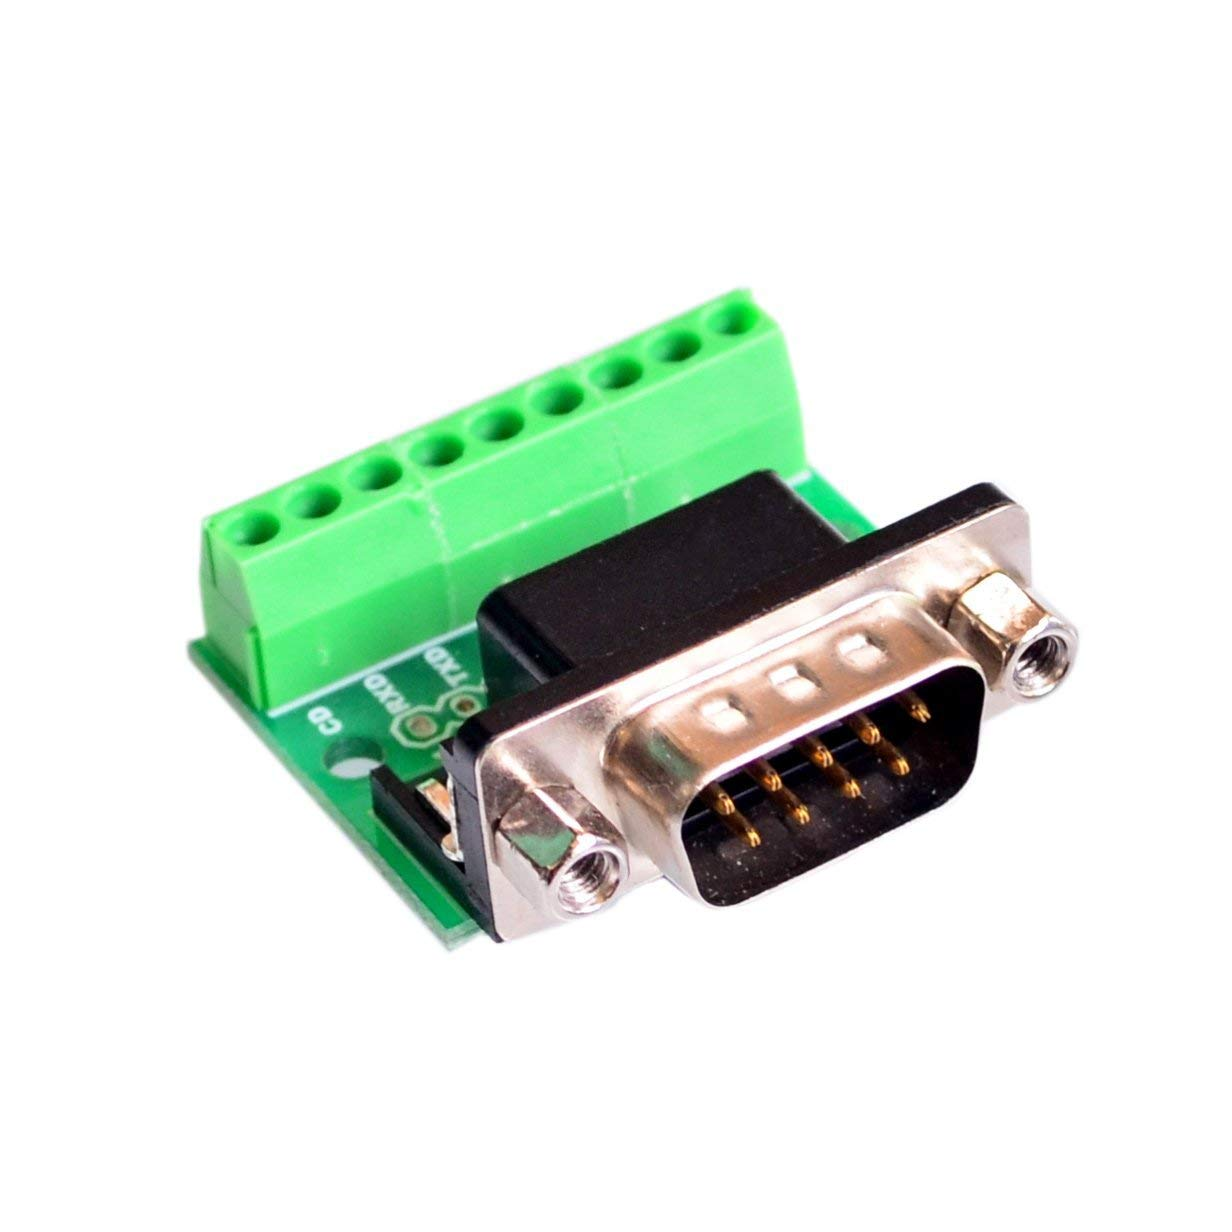 Bestol 10PCS/LOT DB9 RS232 Serial to Terminal male Adapter Connector Breakout Board Black+Green